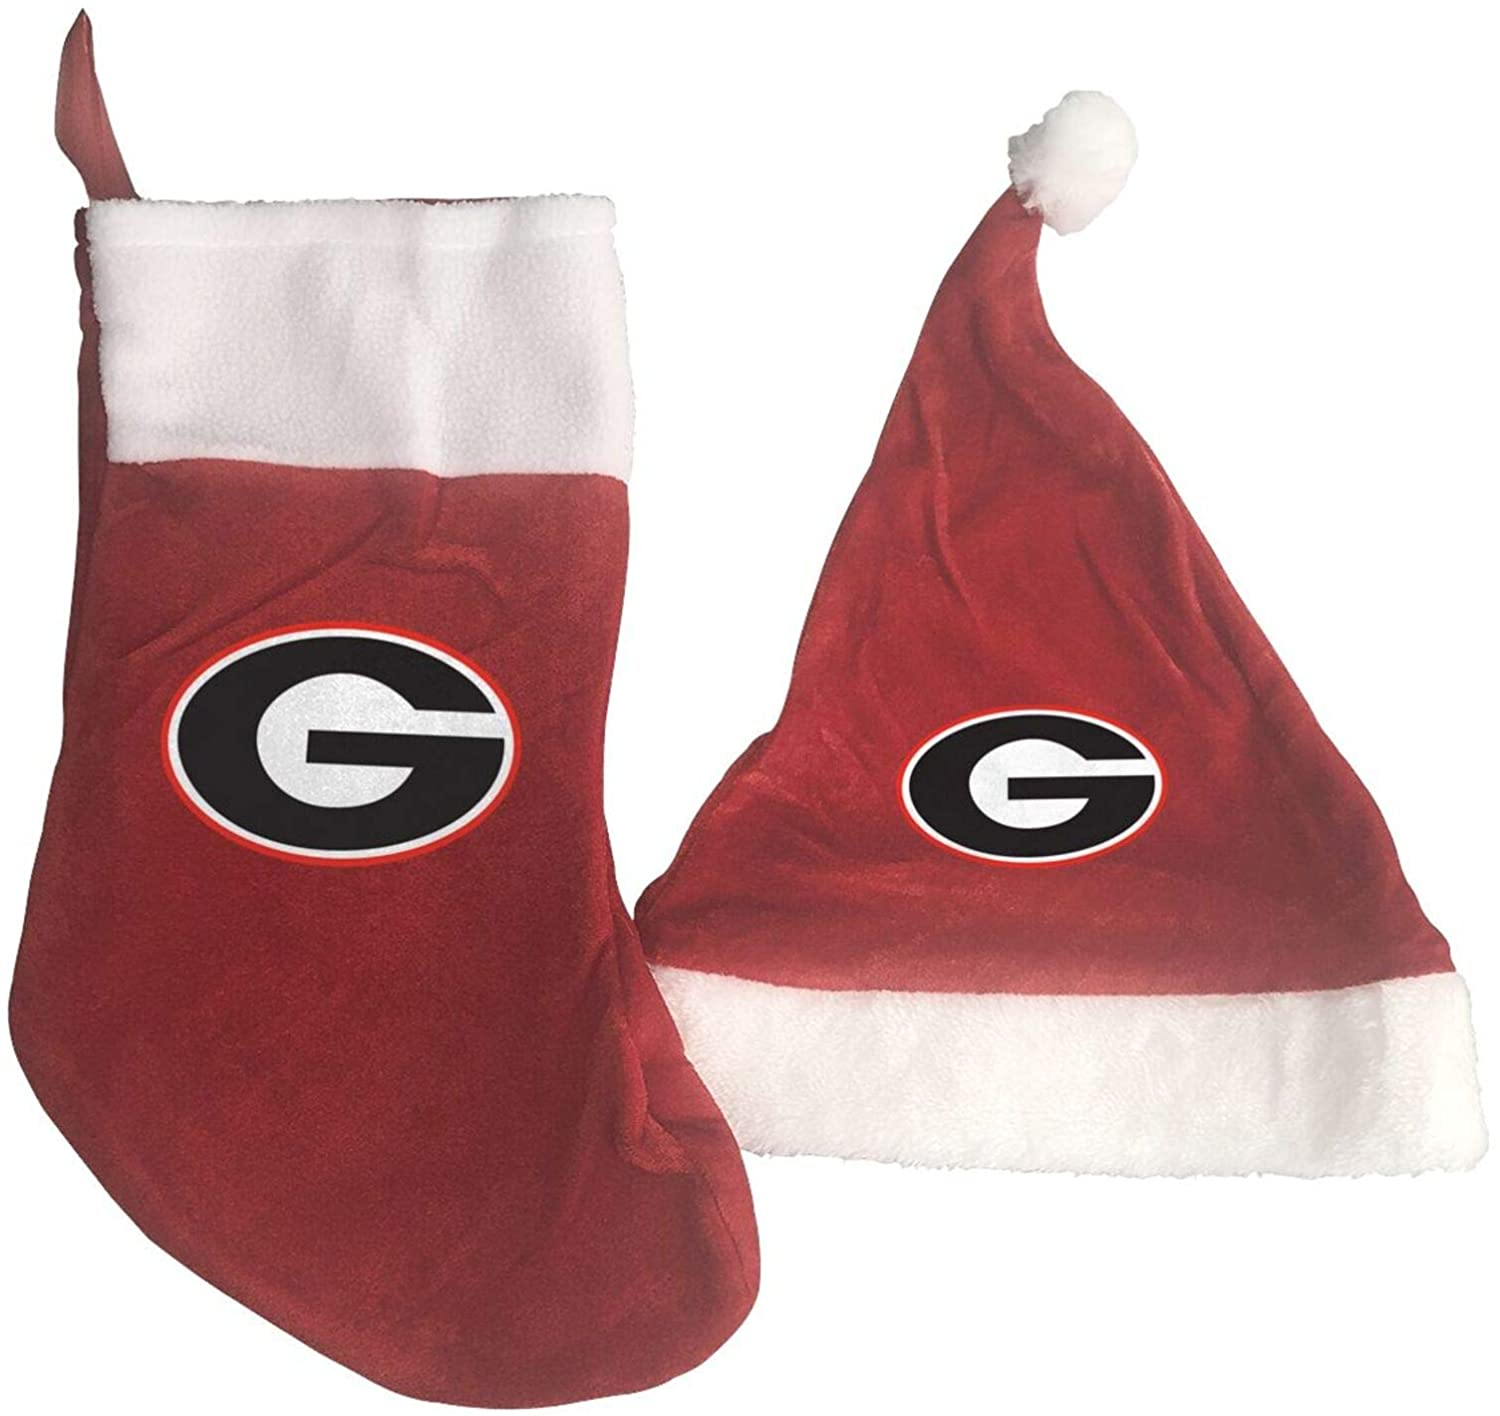 GLleaf University of Georgia Christmas Hat and Christmas Stocking Santa Socks Red Fireplace Hanging Stockings for Ornaments Family Holiday Xmas Party Decorations